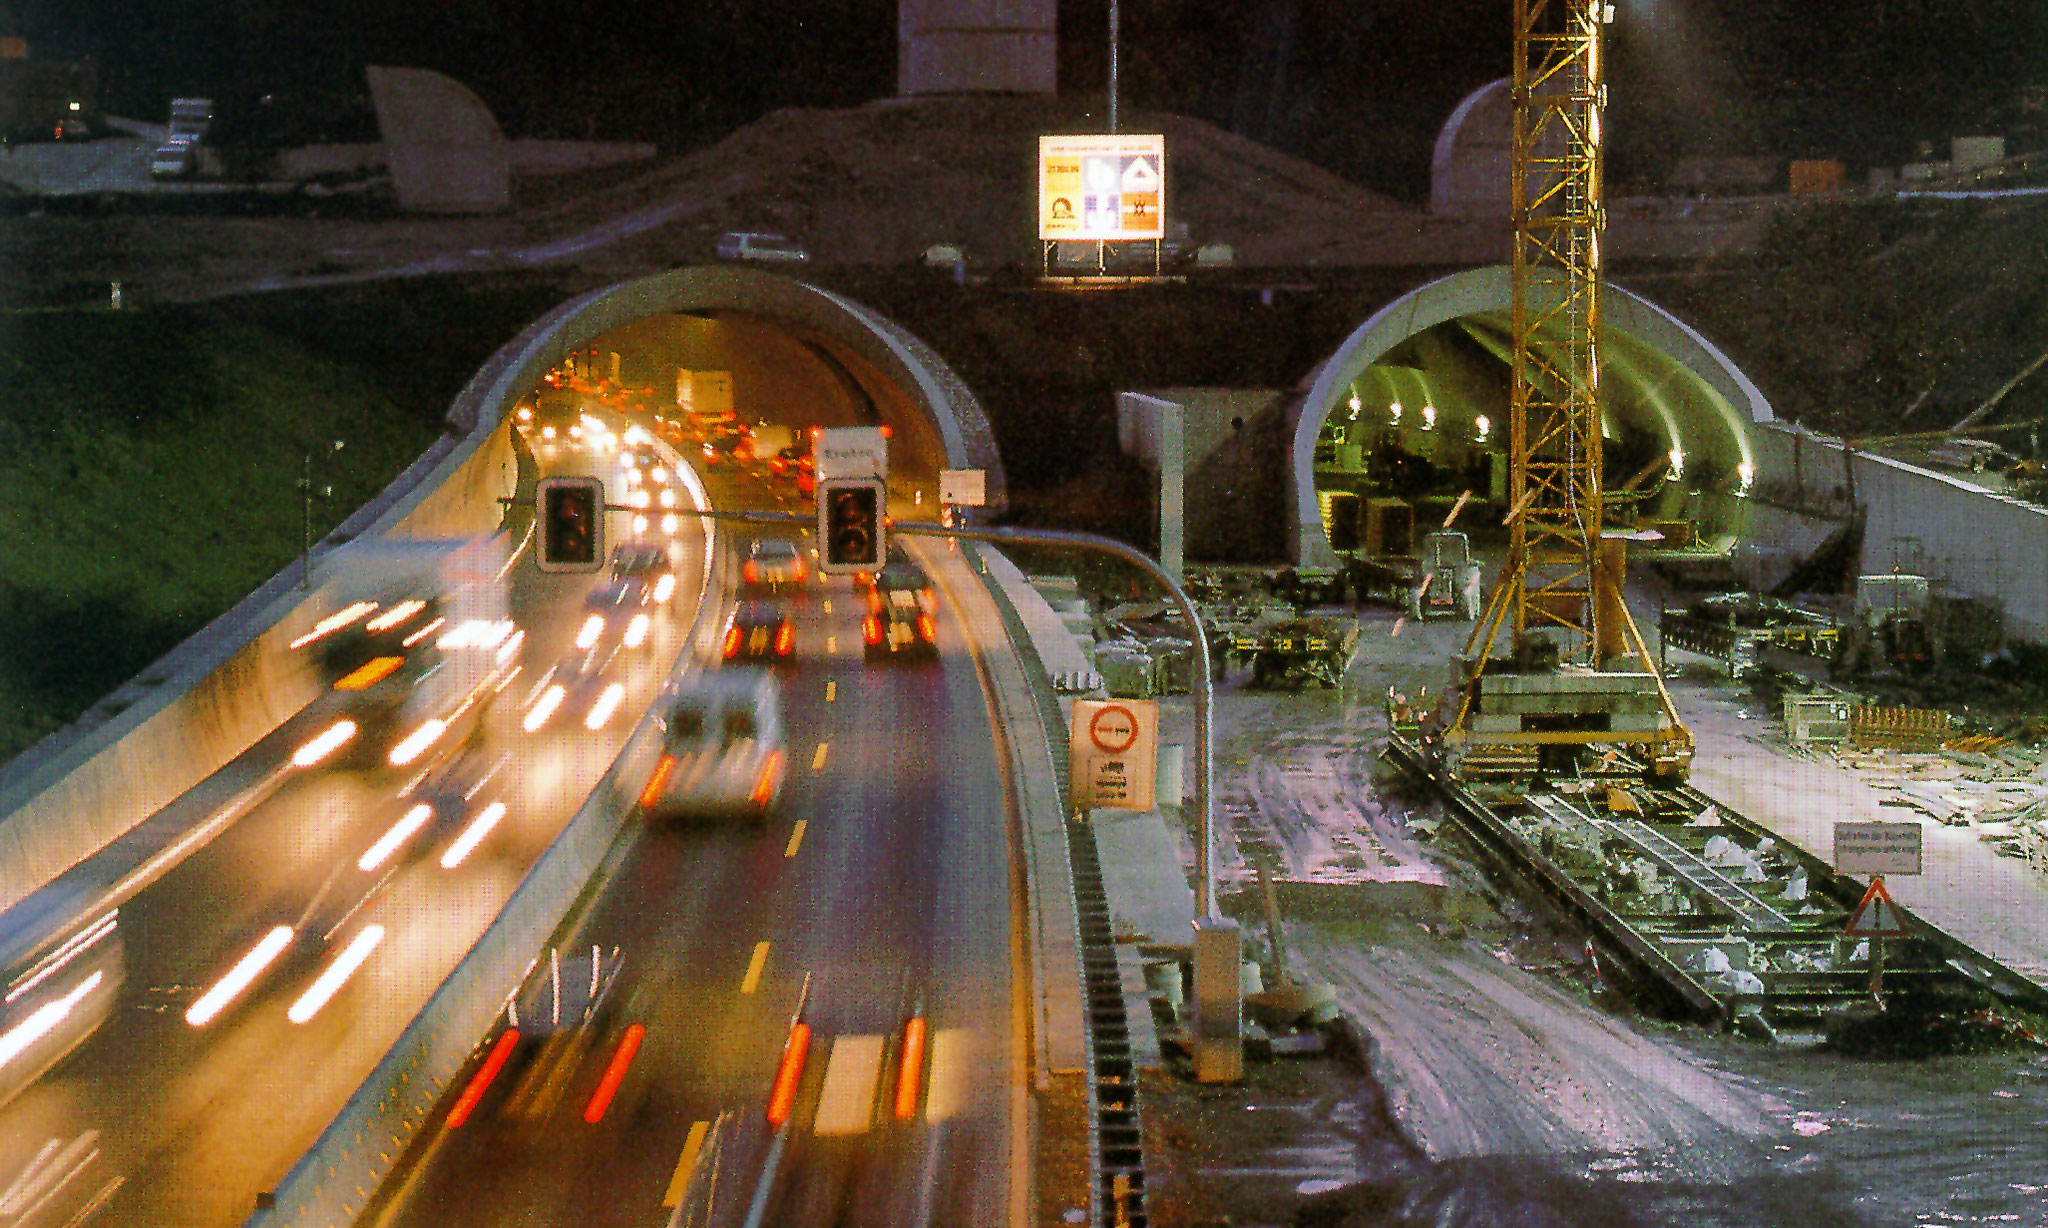 Engelbergtunnel